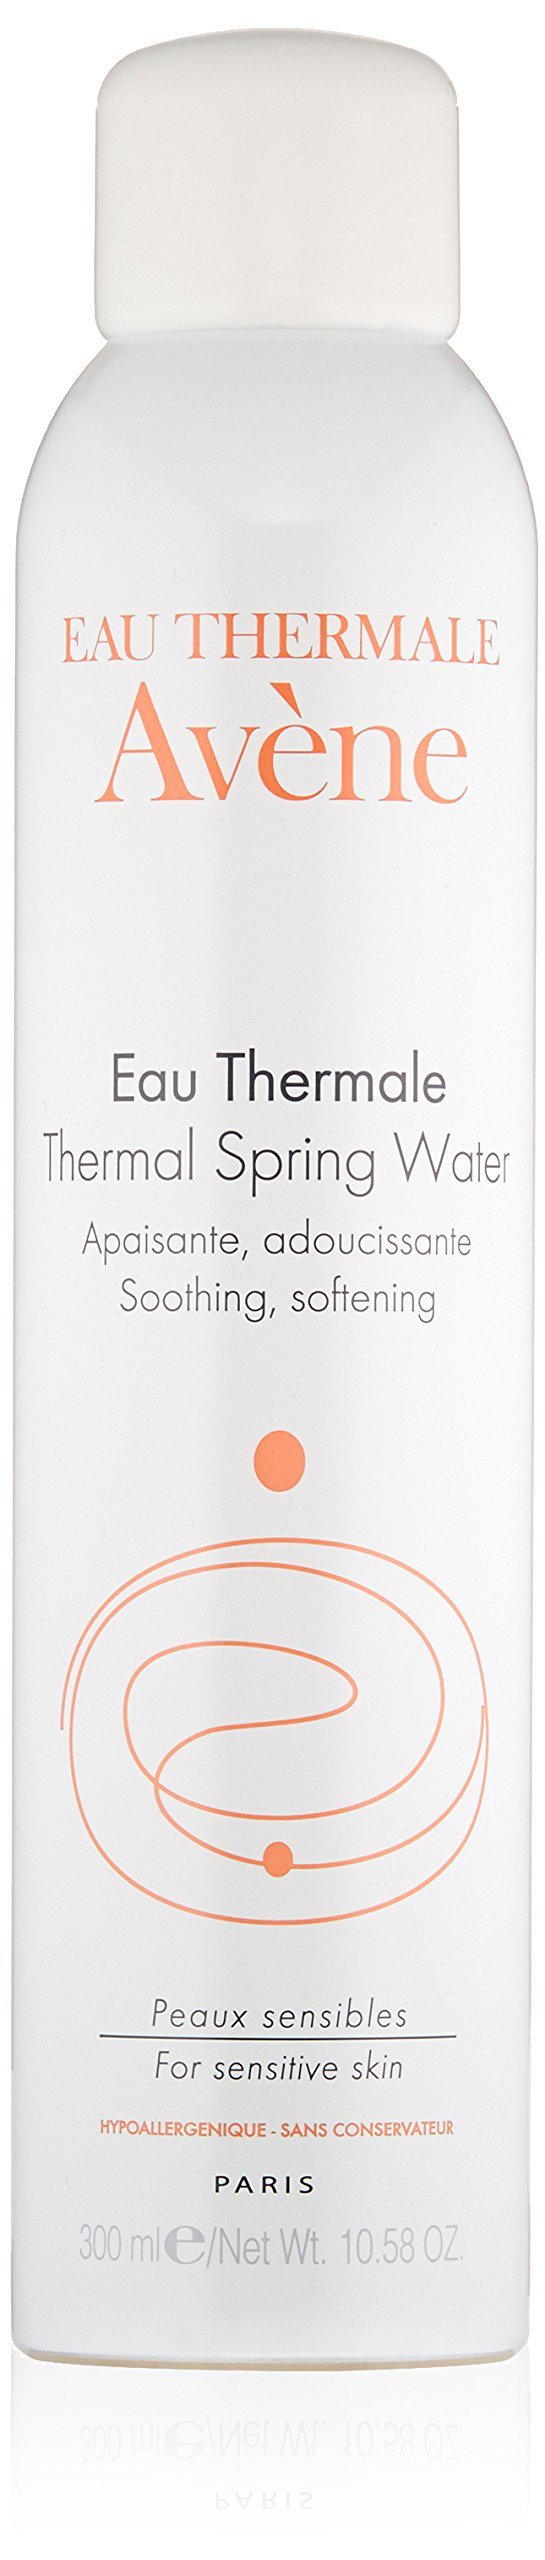 Eau Thermale Avène Thermal Spring Water